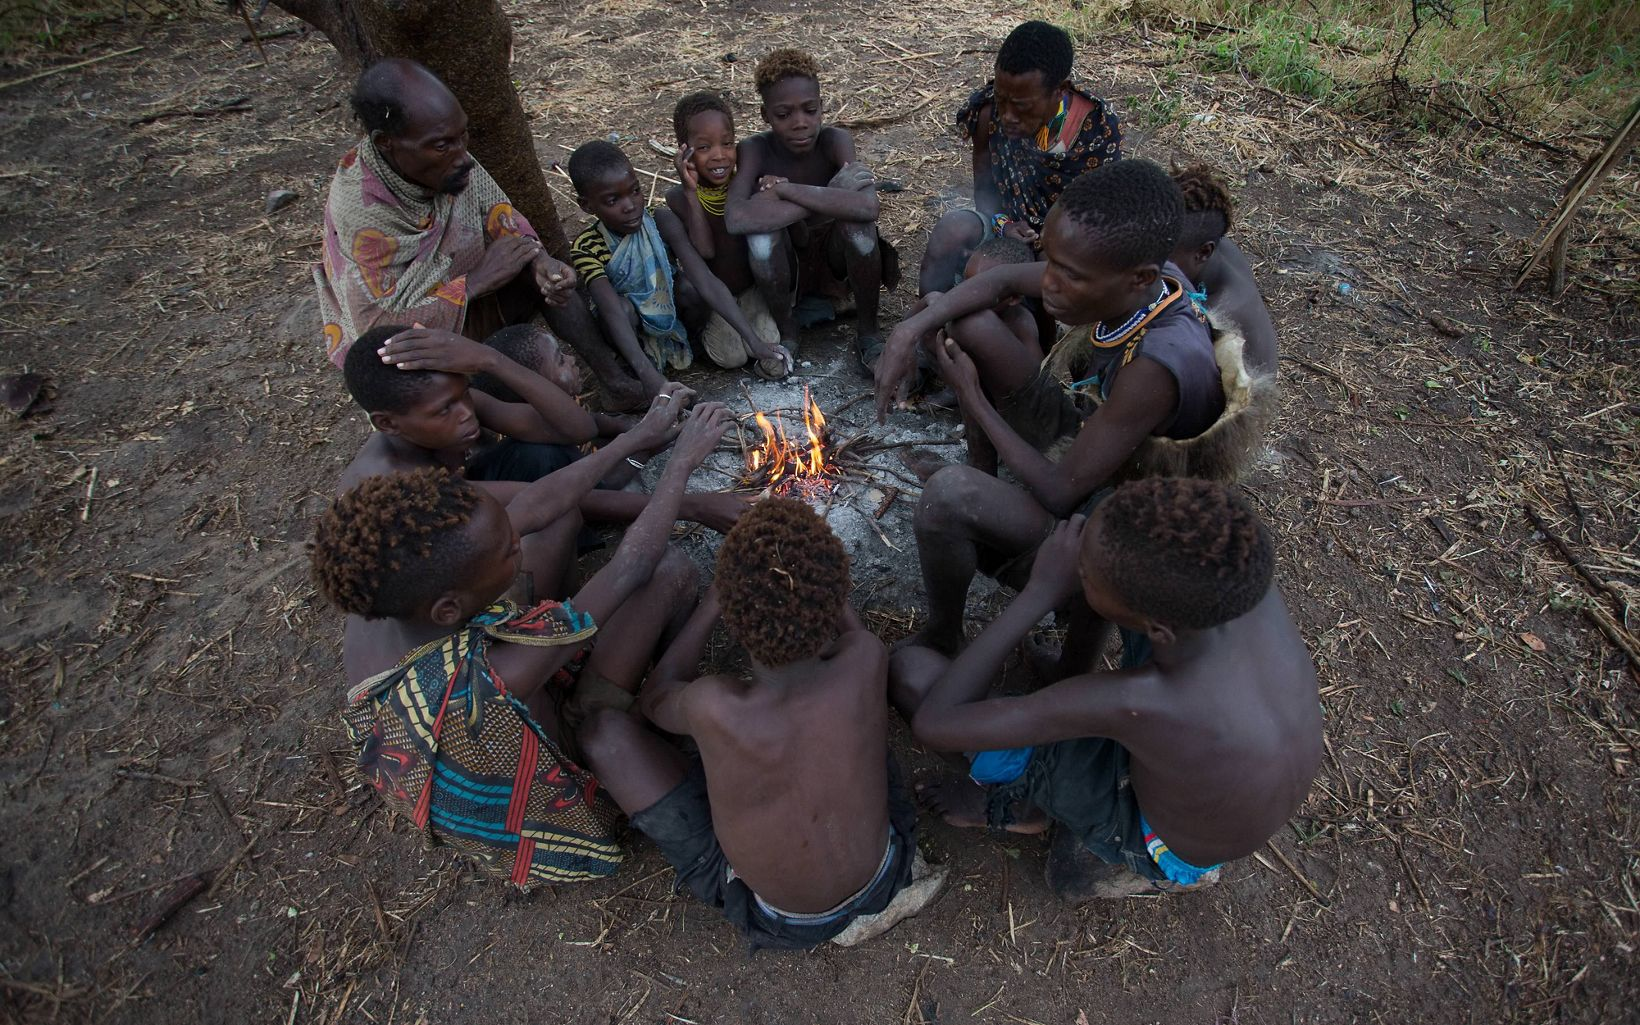 At sundown, members of the Hadza tribe come together to build a fire and share stories from the day.